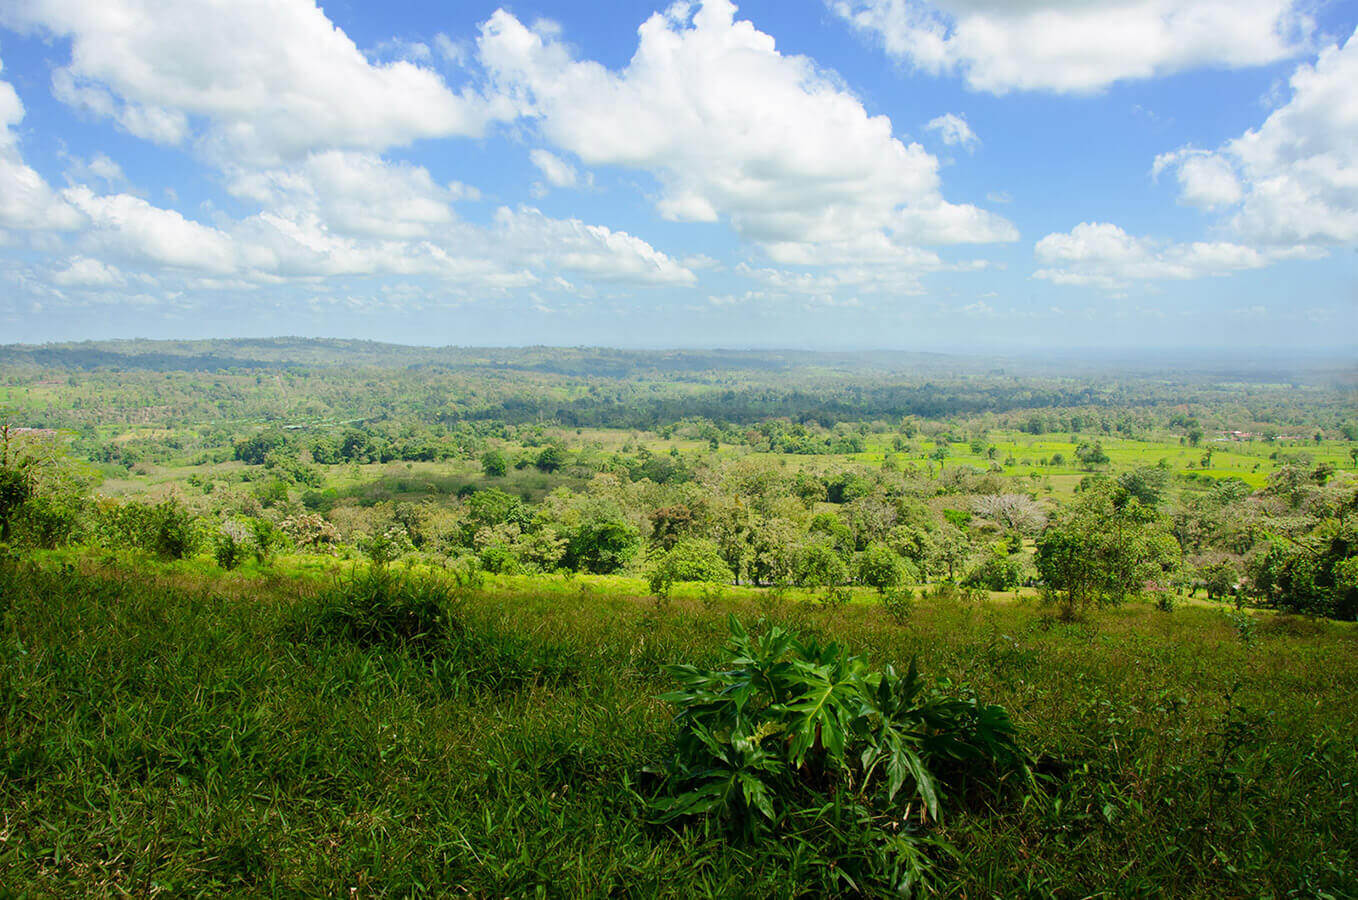 Costa Rica Green Field Landscape by Carrie Morgan